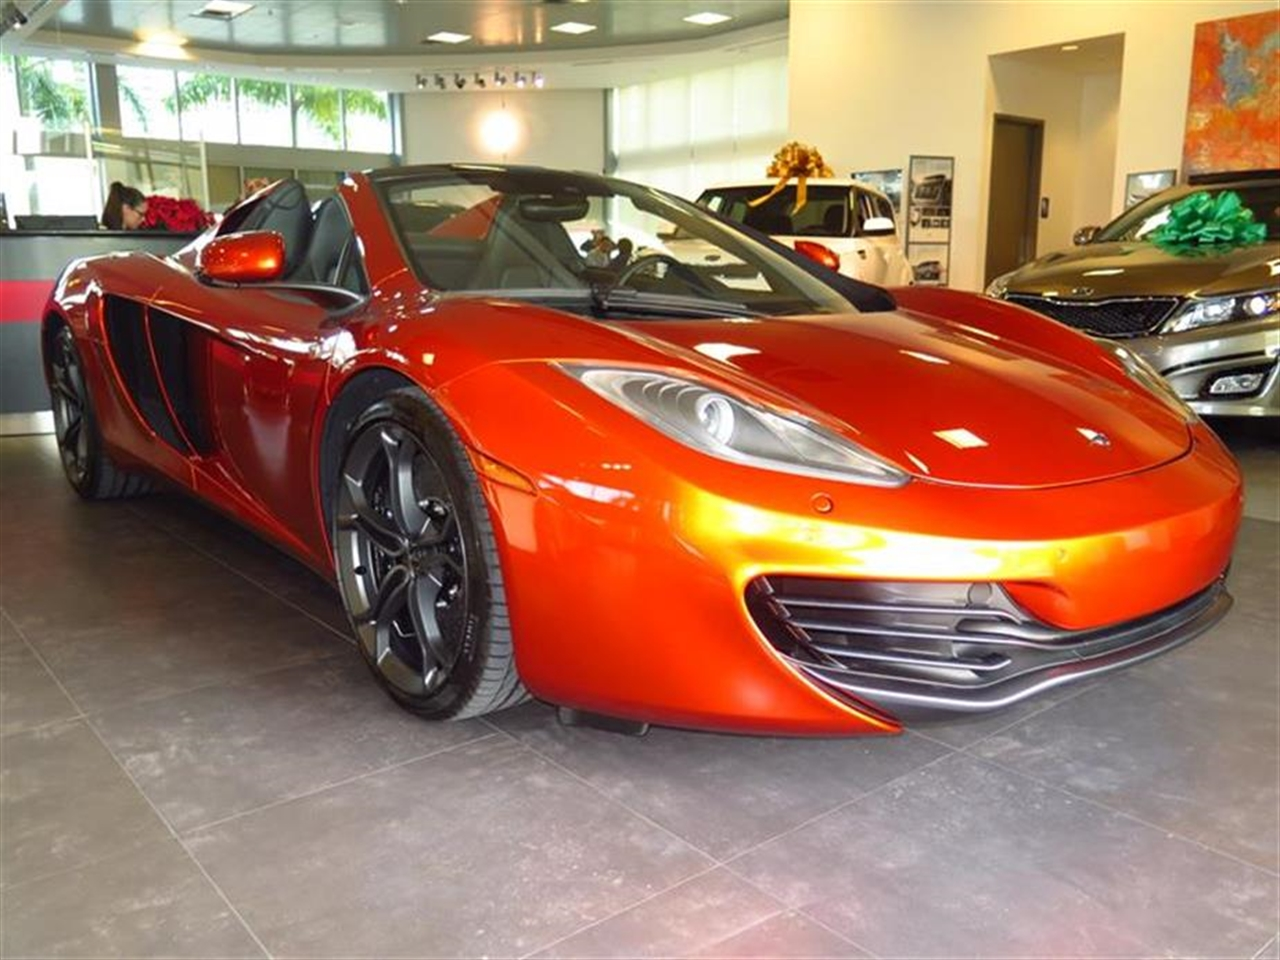 2014 MCLAREN MP4-12C 2dr Conv Spider 395 miles 2 12V DC Power Outlets 2 Person Seating Capacity